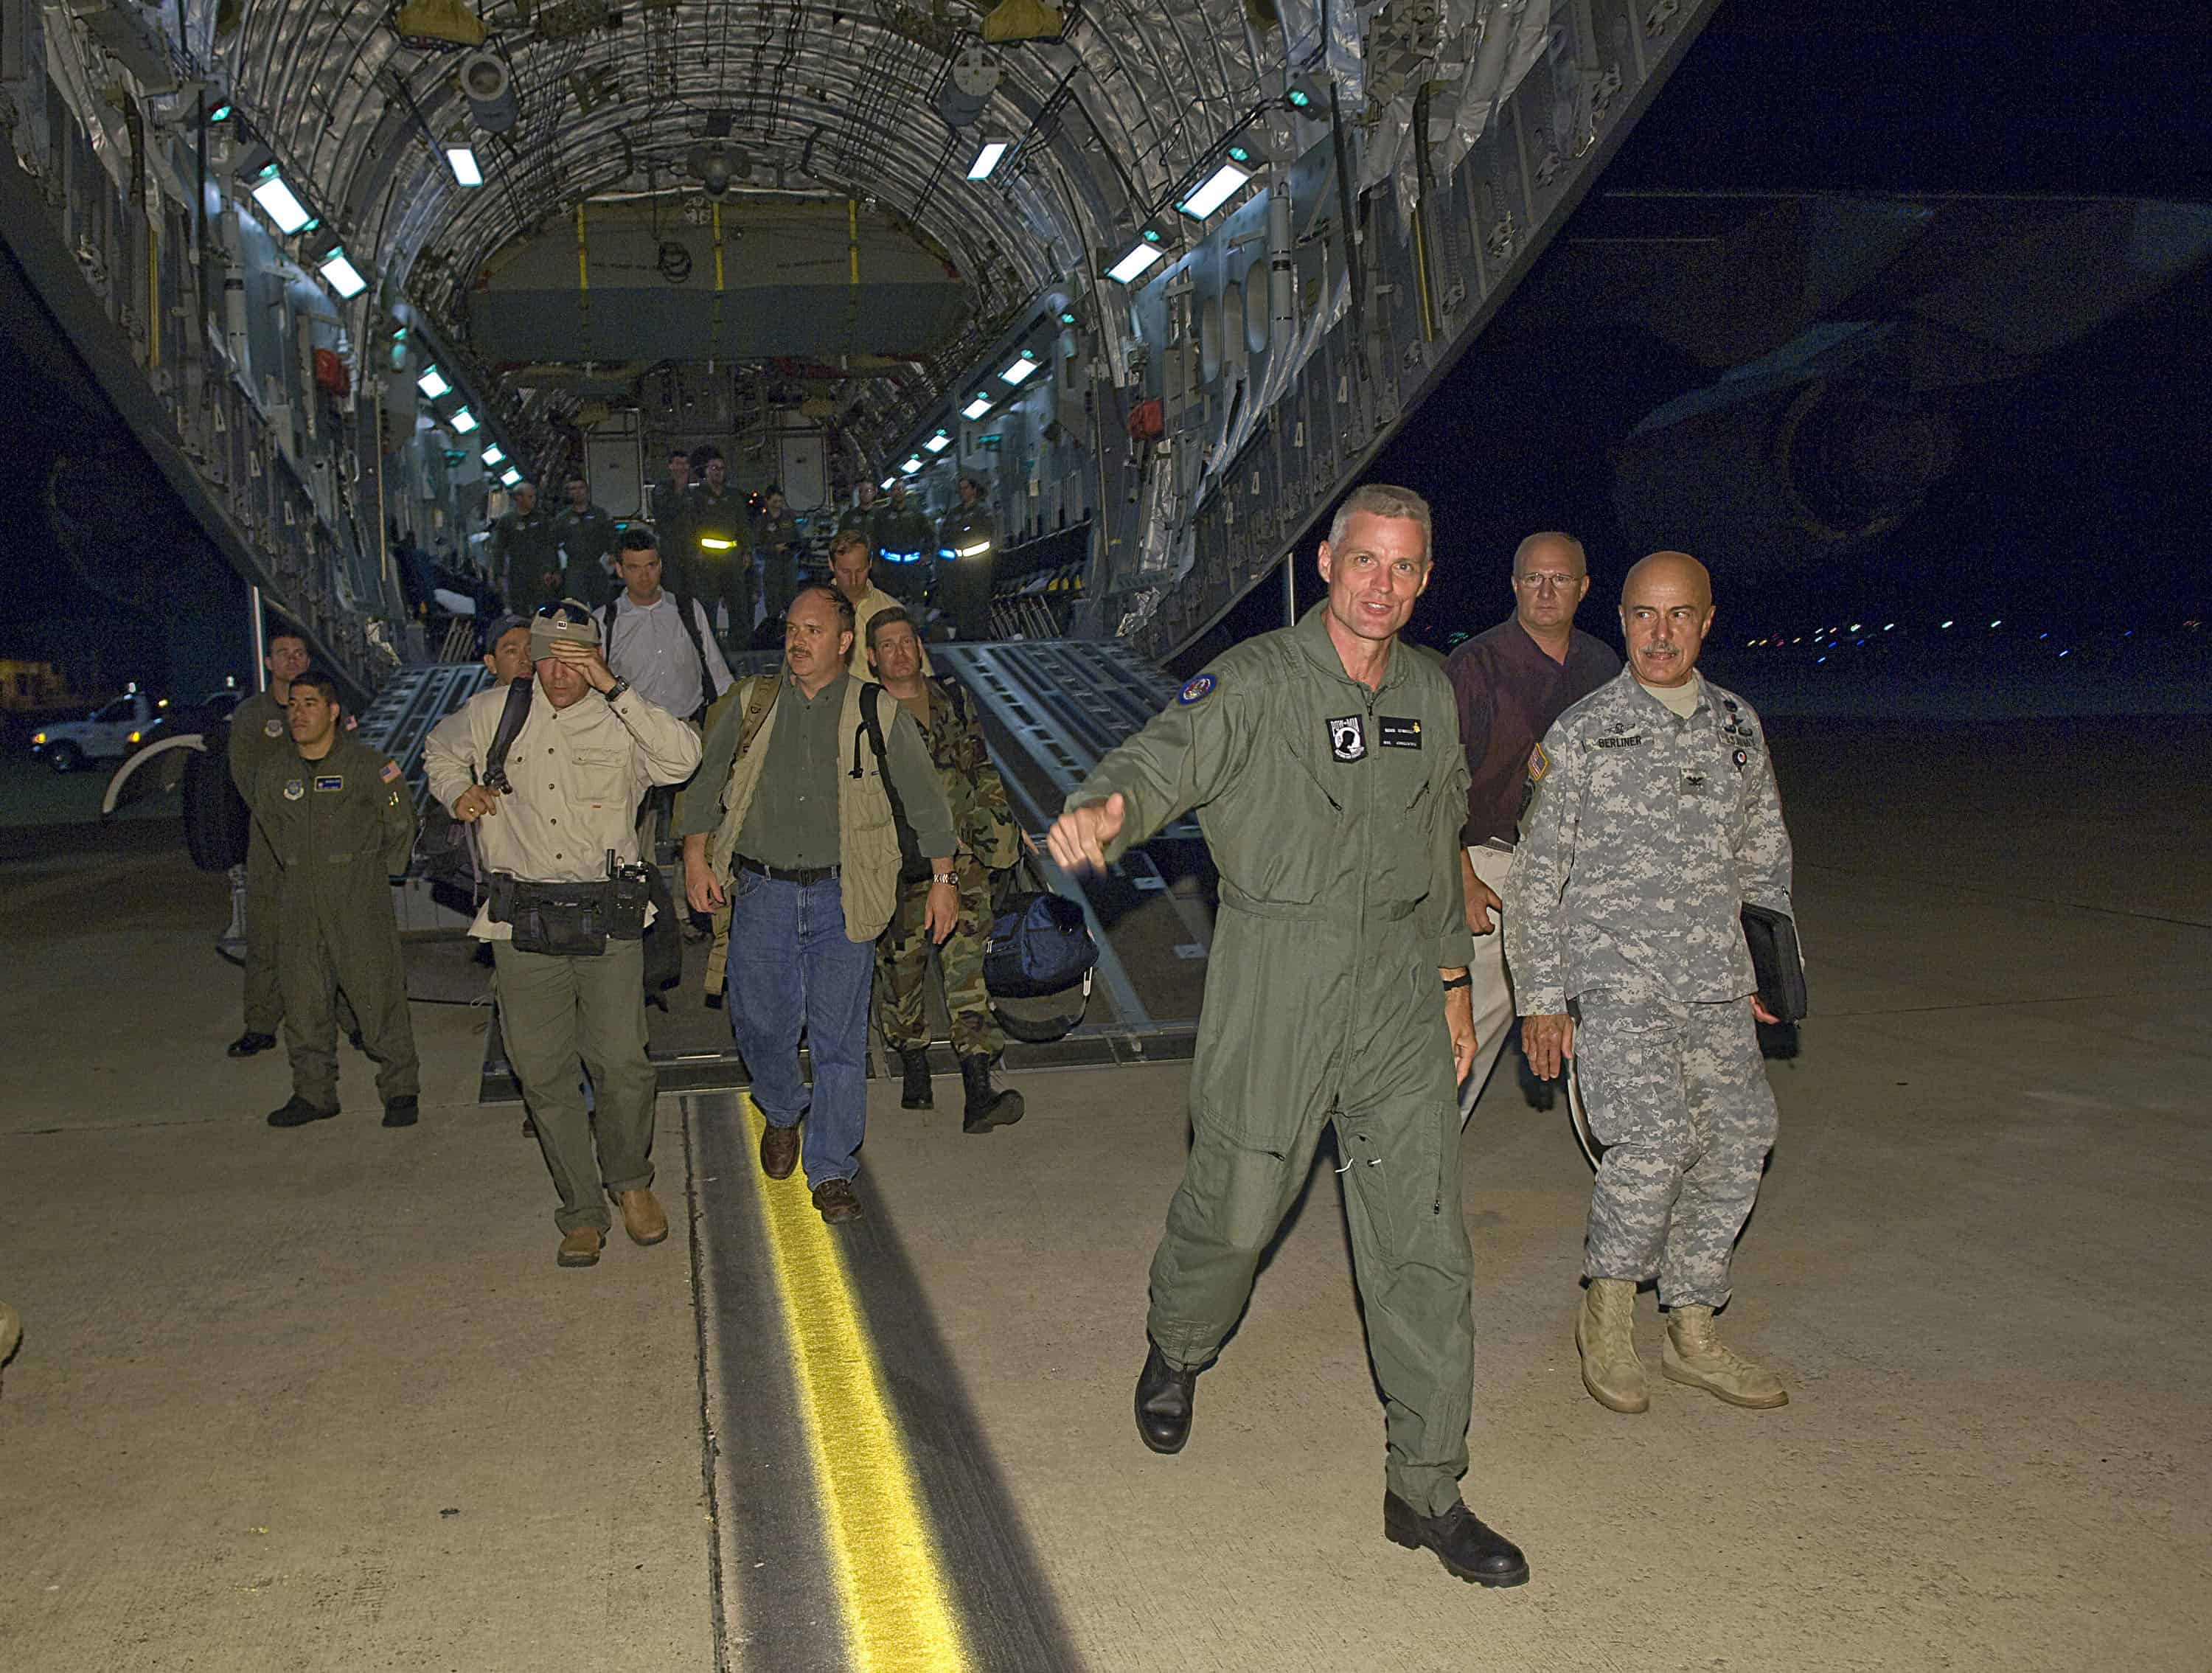 Former hostage Keith Stansell, center, exits a C-17 Globemaster III onto U.S. soil.